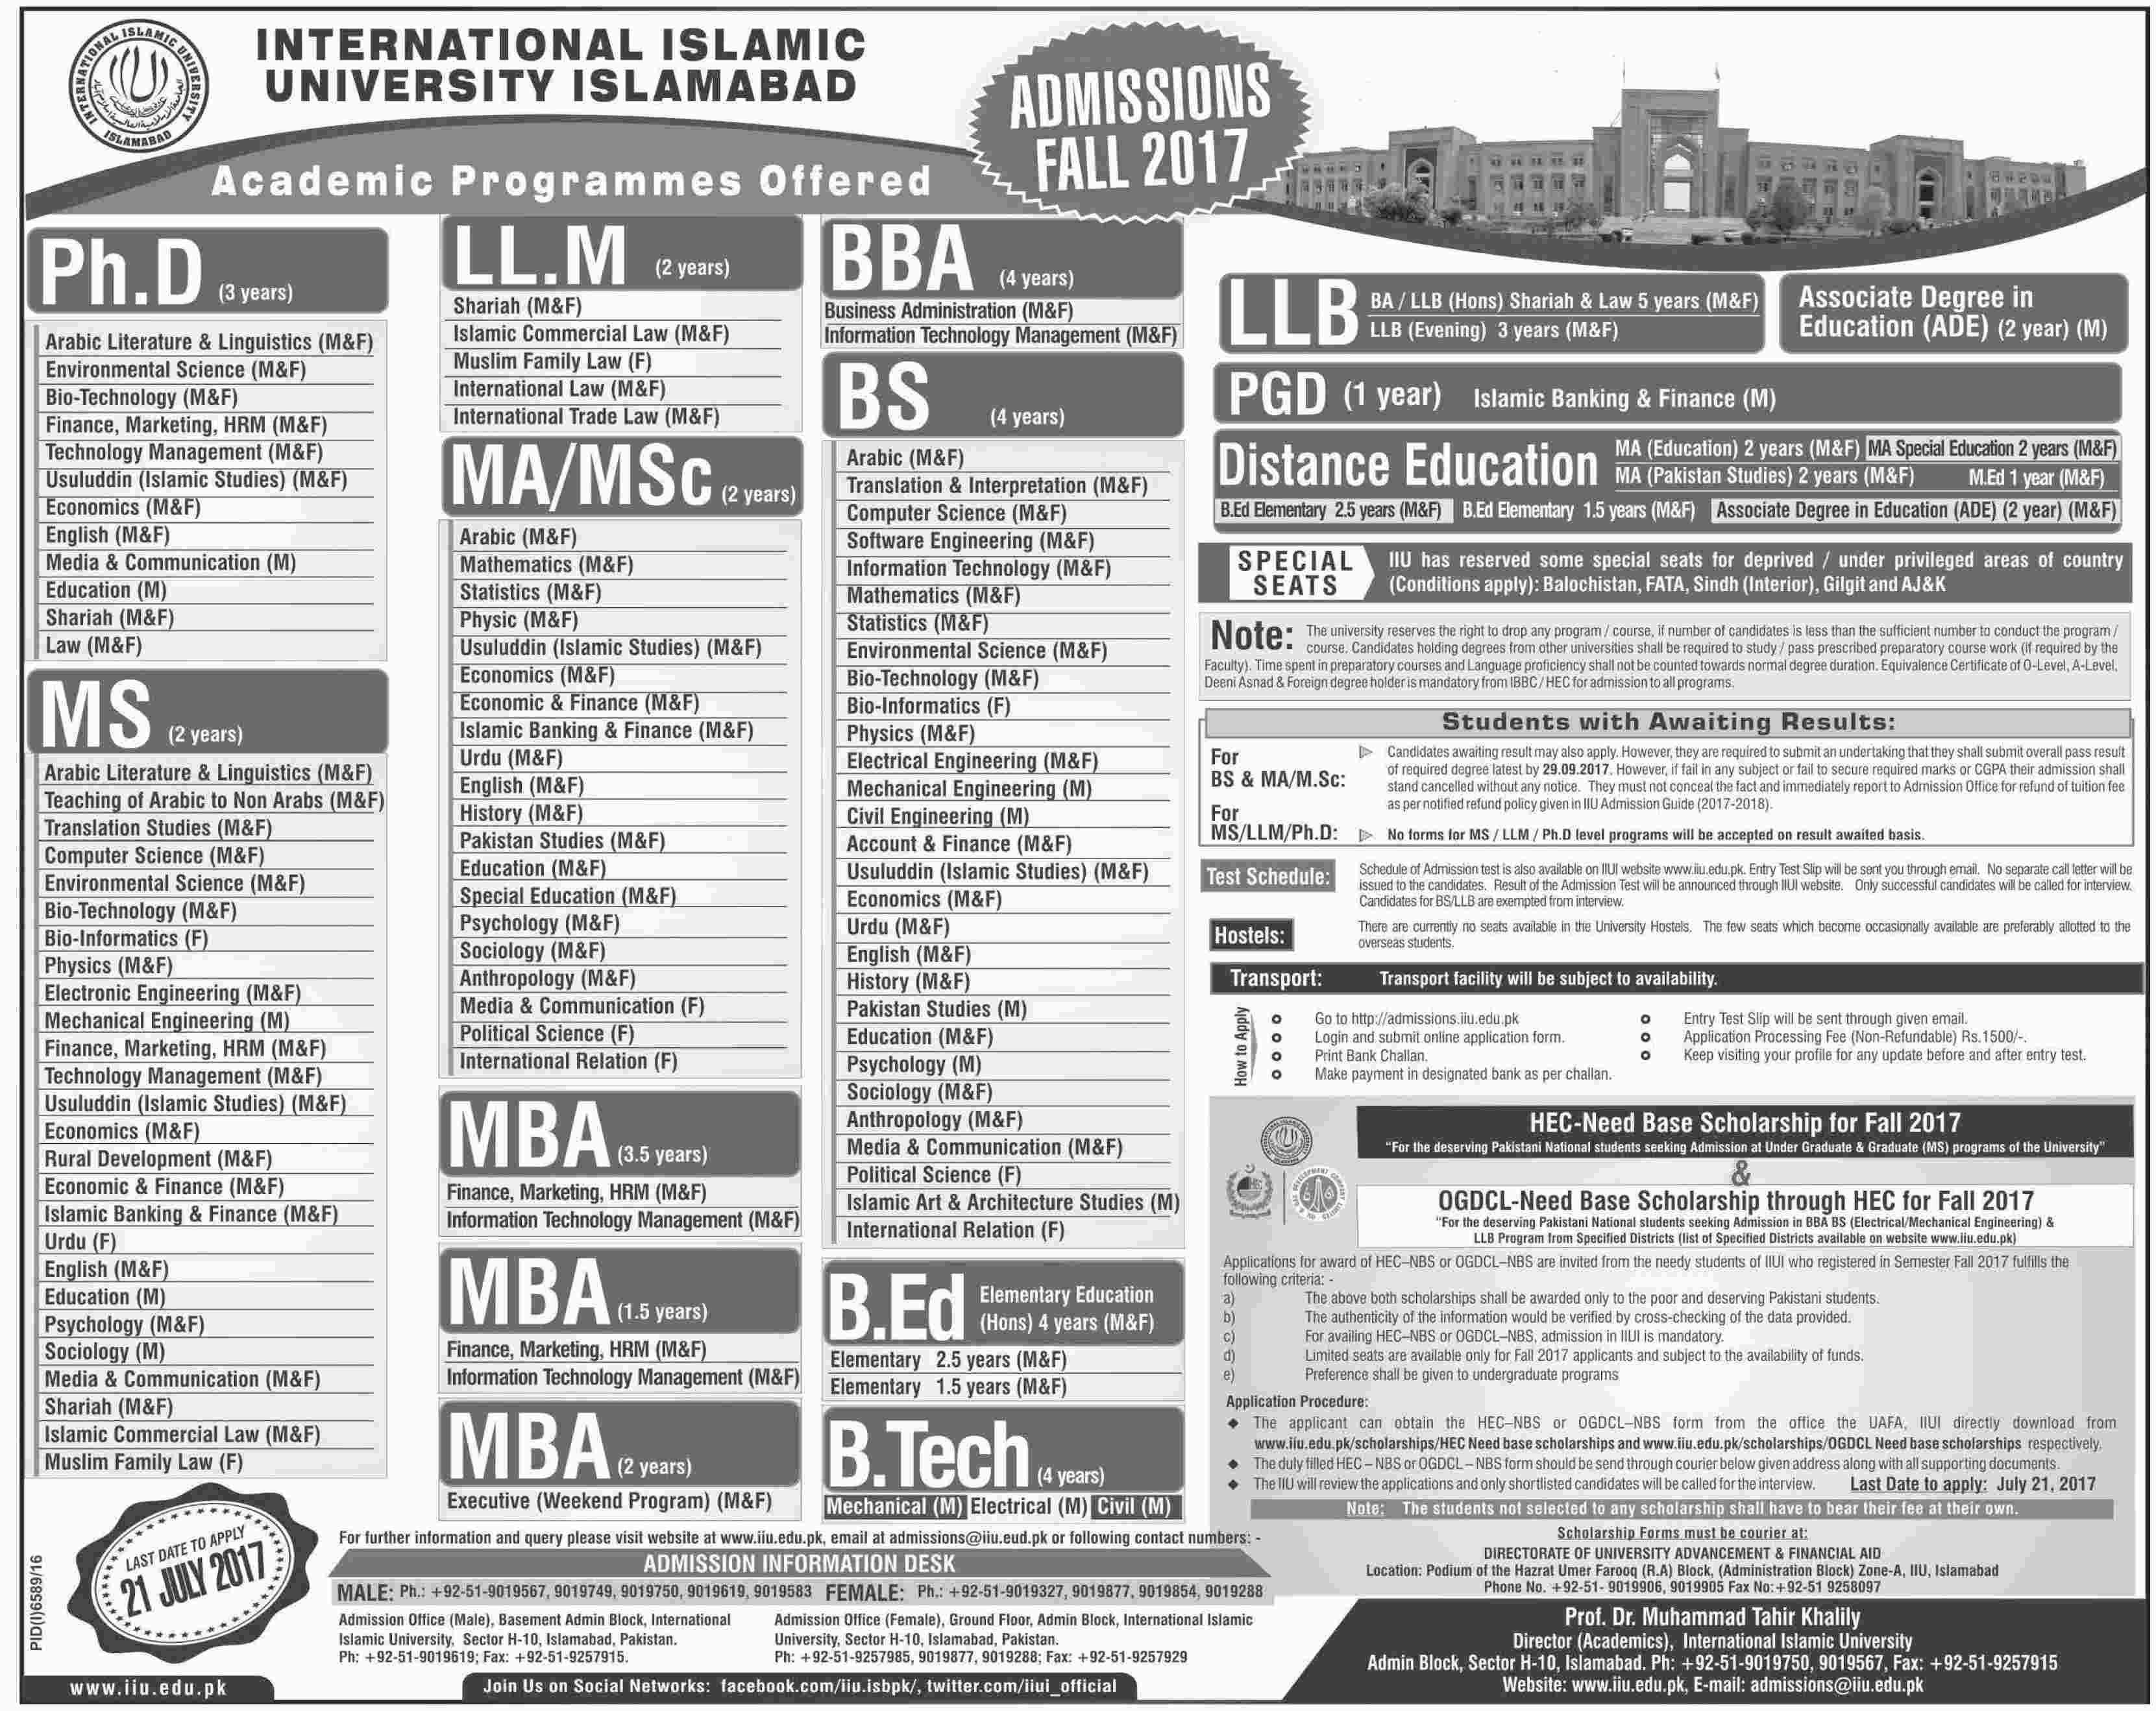 International Islamic University Admission 2017 Fall Admission Form, Date Schedule